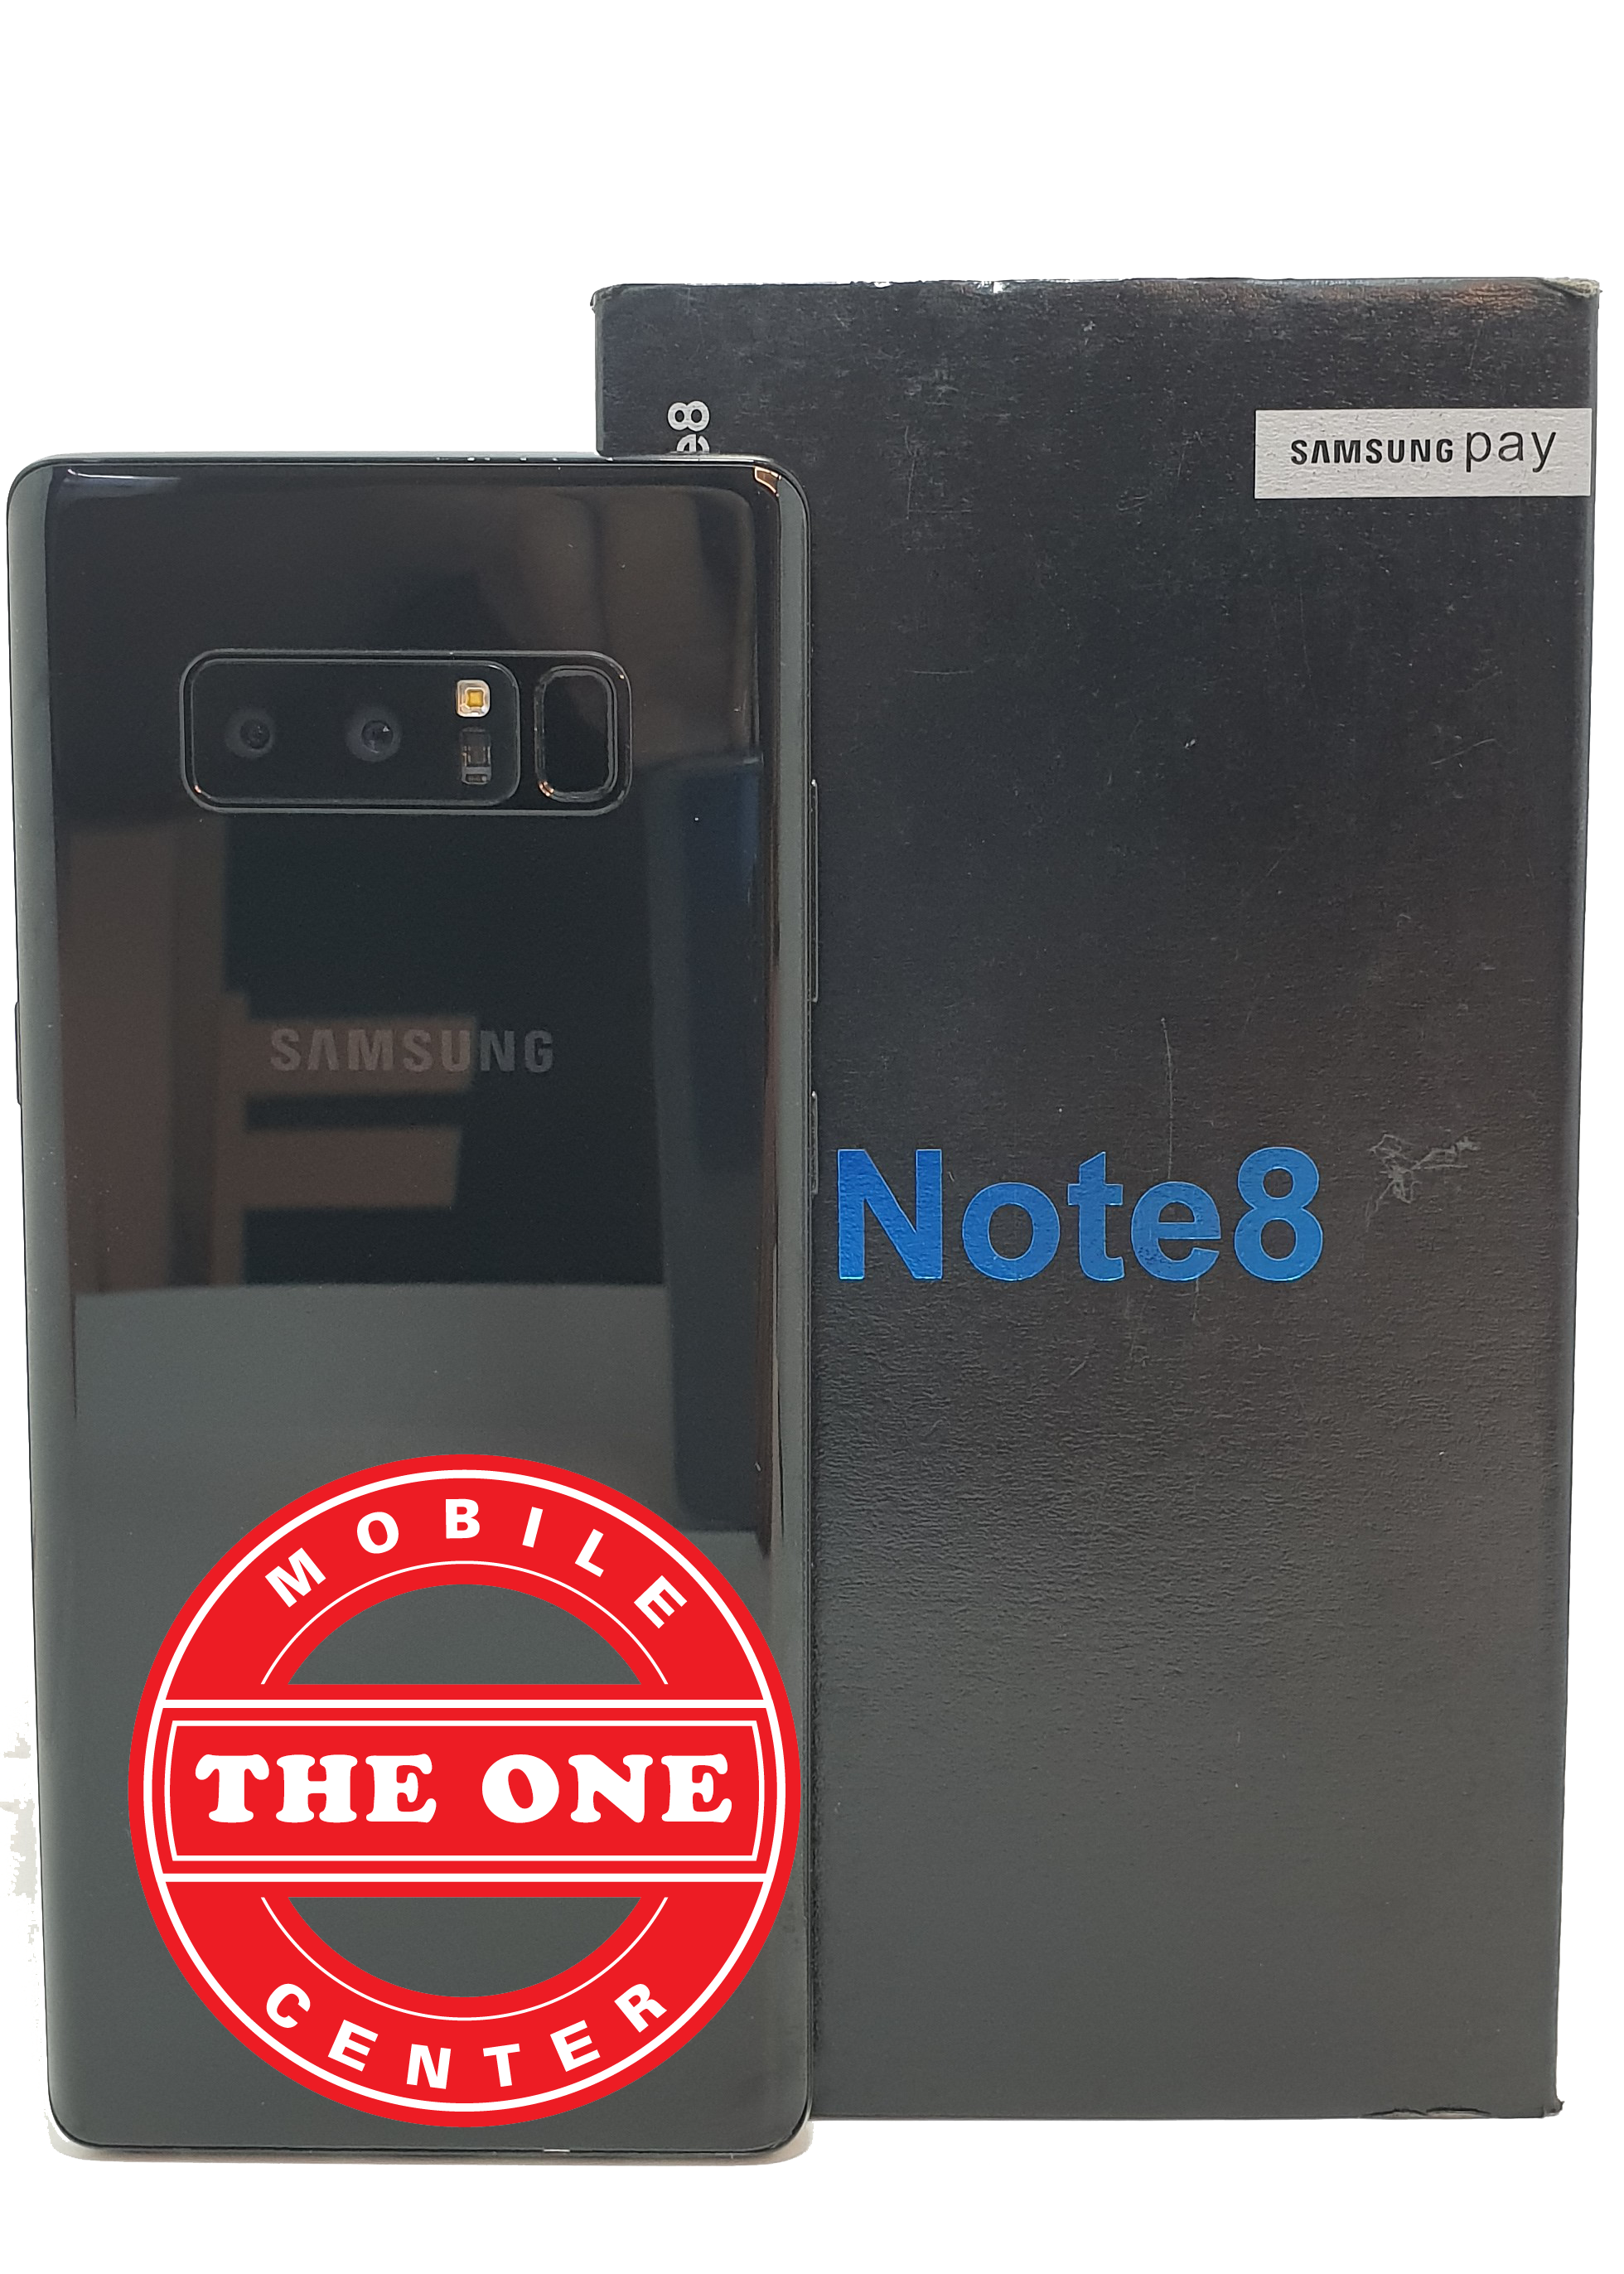 GALAXY NOTE 8 N9500 Black chip Snapdragon 2 Sim